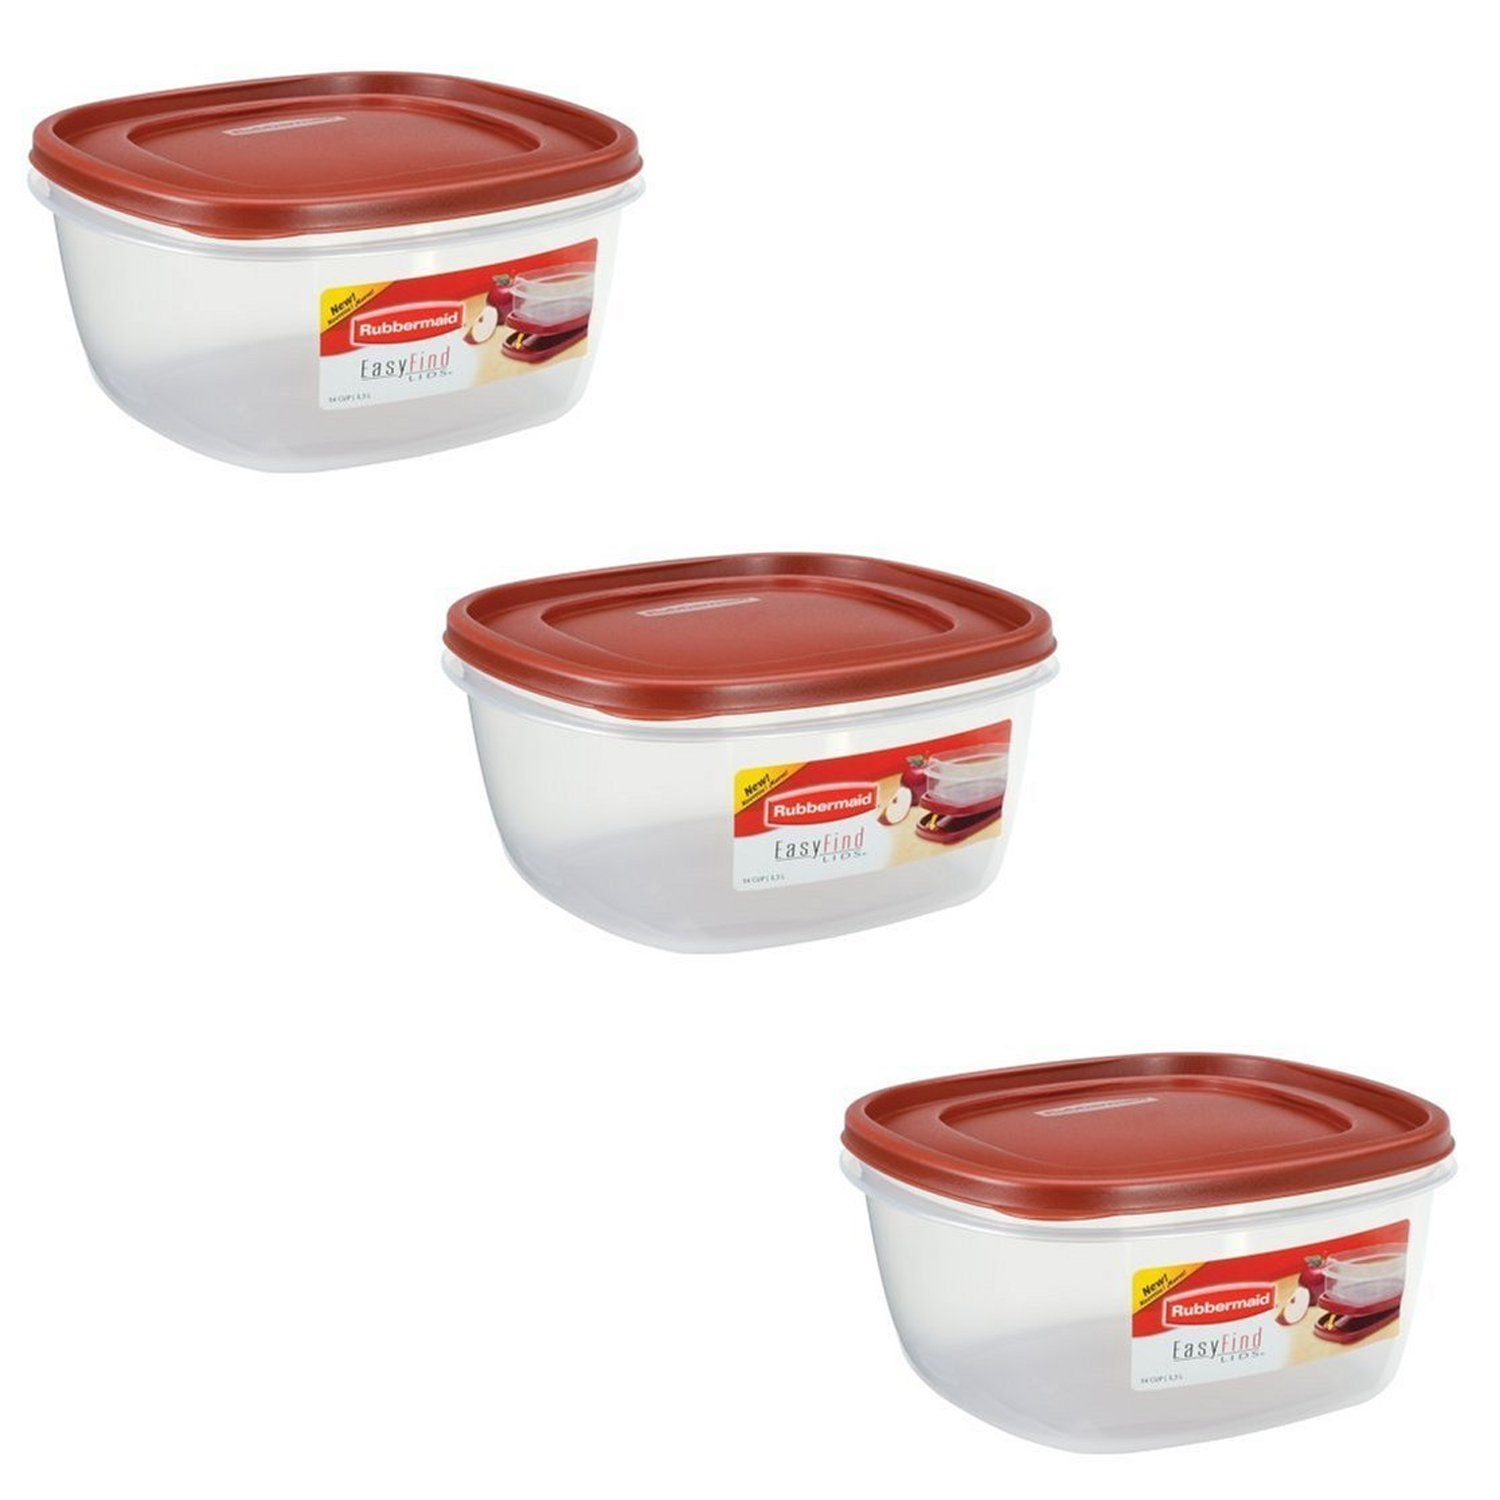 Amazon.com Rubbermaid - 1777161 Easy-Find Lid Food Storage Container 14-Cups Pk of 3 Kitchen u0026 Dining  sc 1 st  Amazon.com & Amazon.com: Rubbermaid - 1777161 Easy-Find Lid Food Storage ...